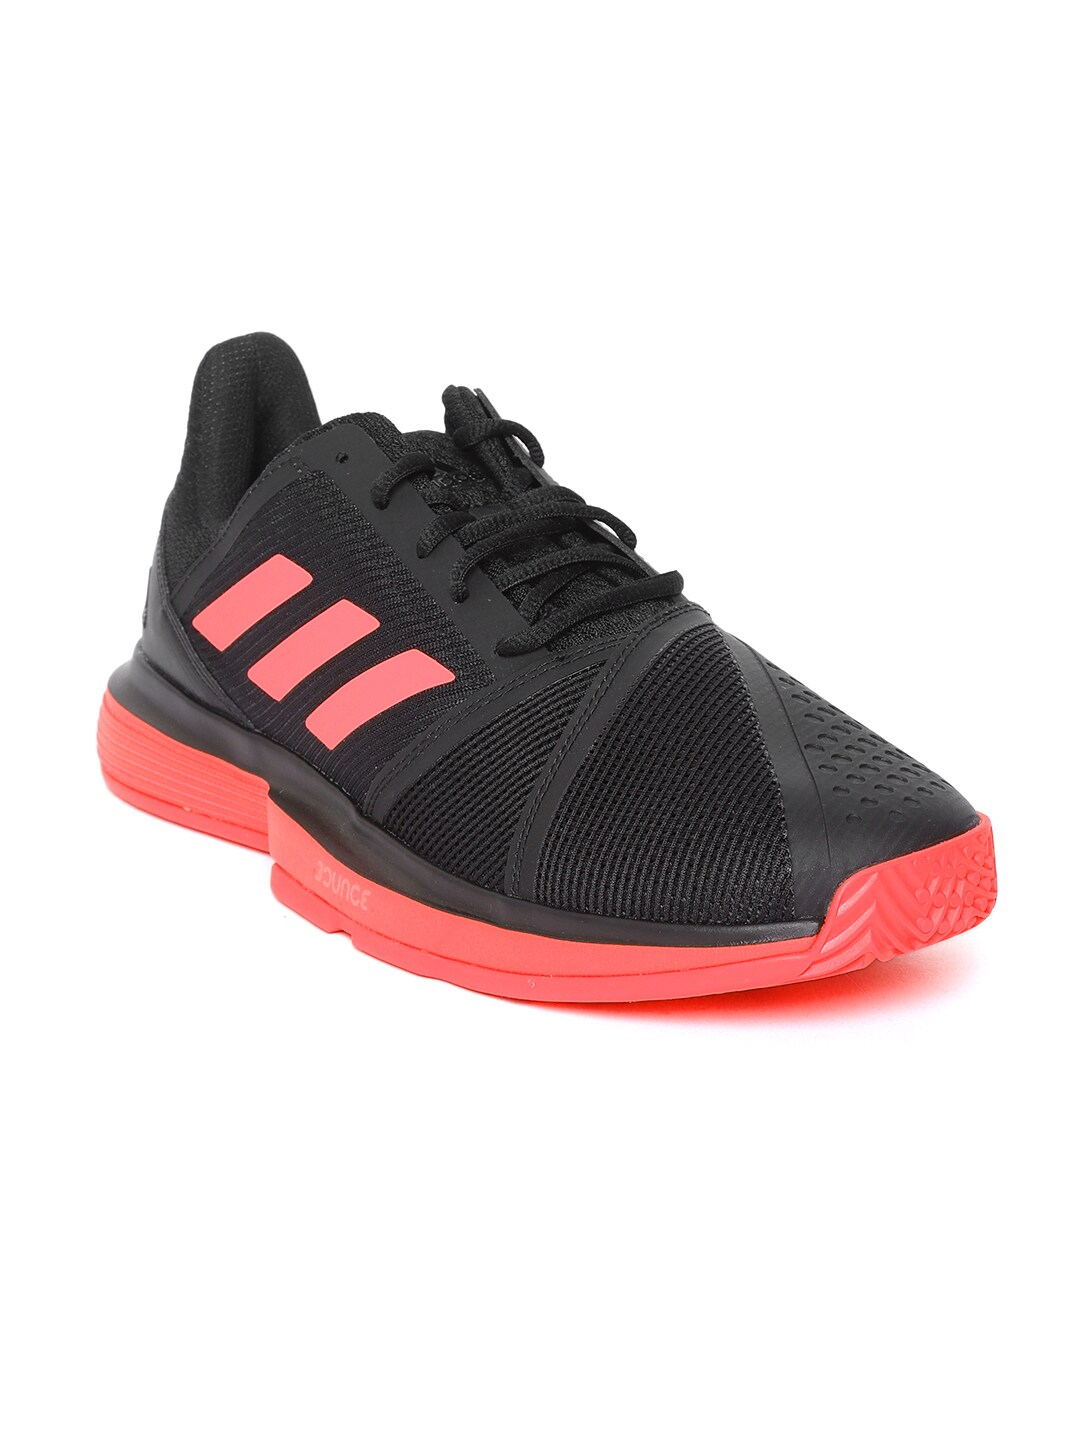 bc65962db04d Mens Adidas Shoes - Buy Adidas Shoes for Men Online in India